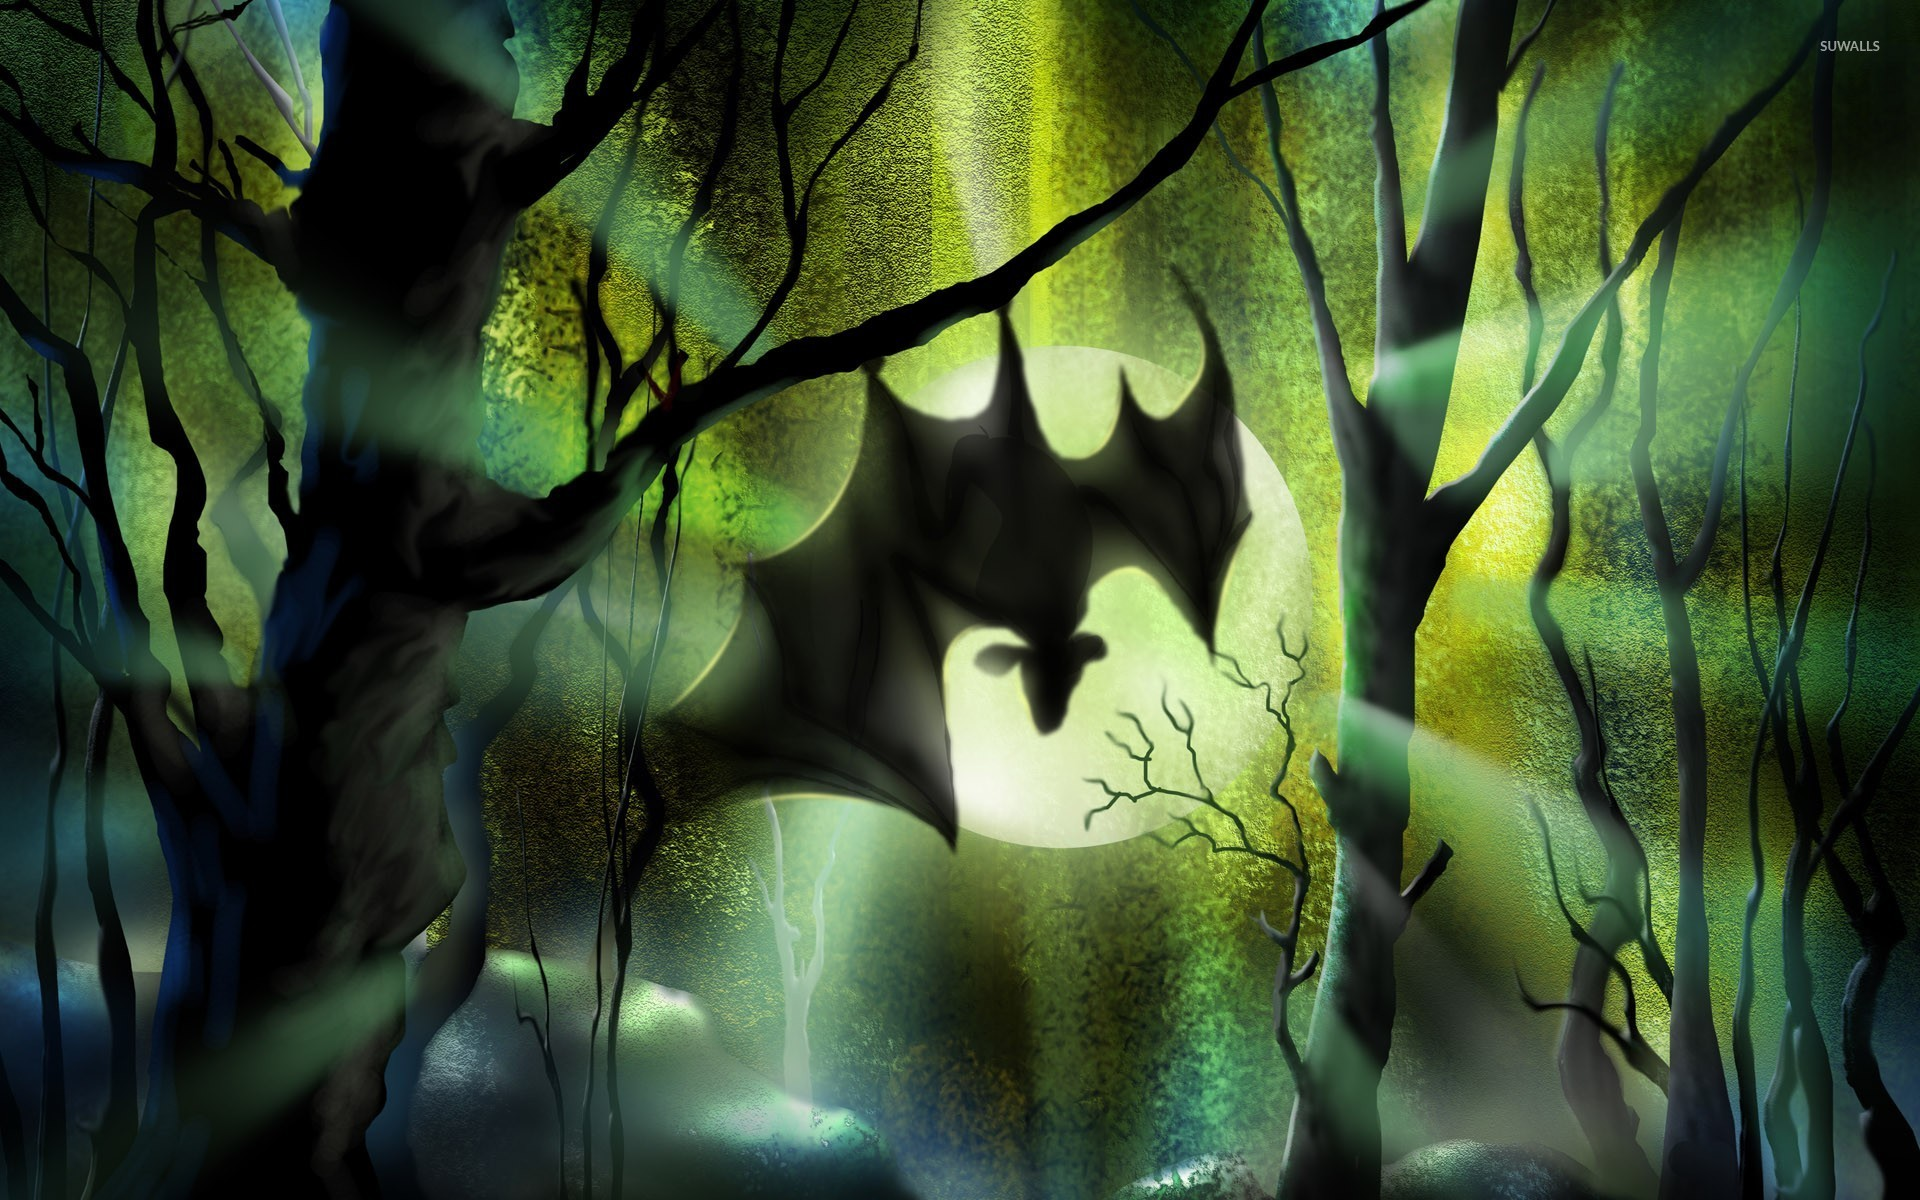 Bat Hanging From A Tree Wallpaper Holiday Wallpapers HD Wallpapers Download Free Images Wallpaper [1000image.com]